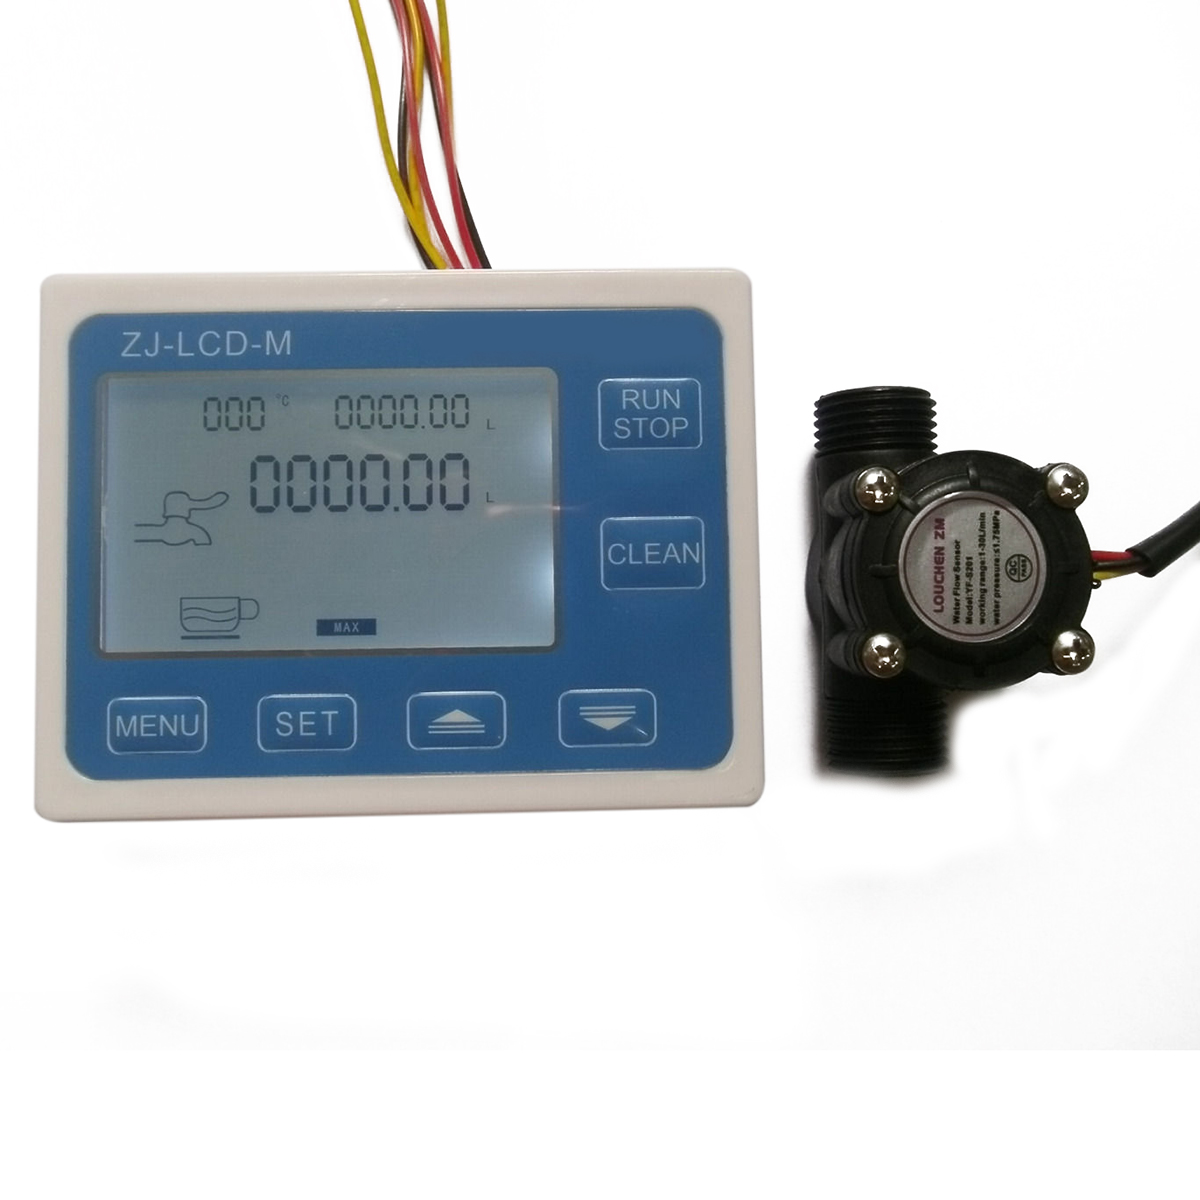 Micro G1/2 Hall effect Flow Water Sensor Meter Flowmeter 1-30L/min + Digital LCD Display Controller Mayitr us208mt flow totalizer usn hs10pa 0 5 10l min 10mm od flow meter and alarmer totalizer frequency counter hall water flow sensor